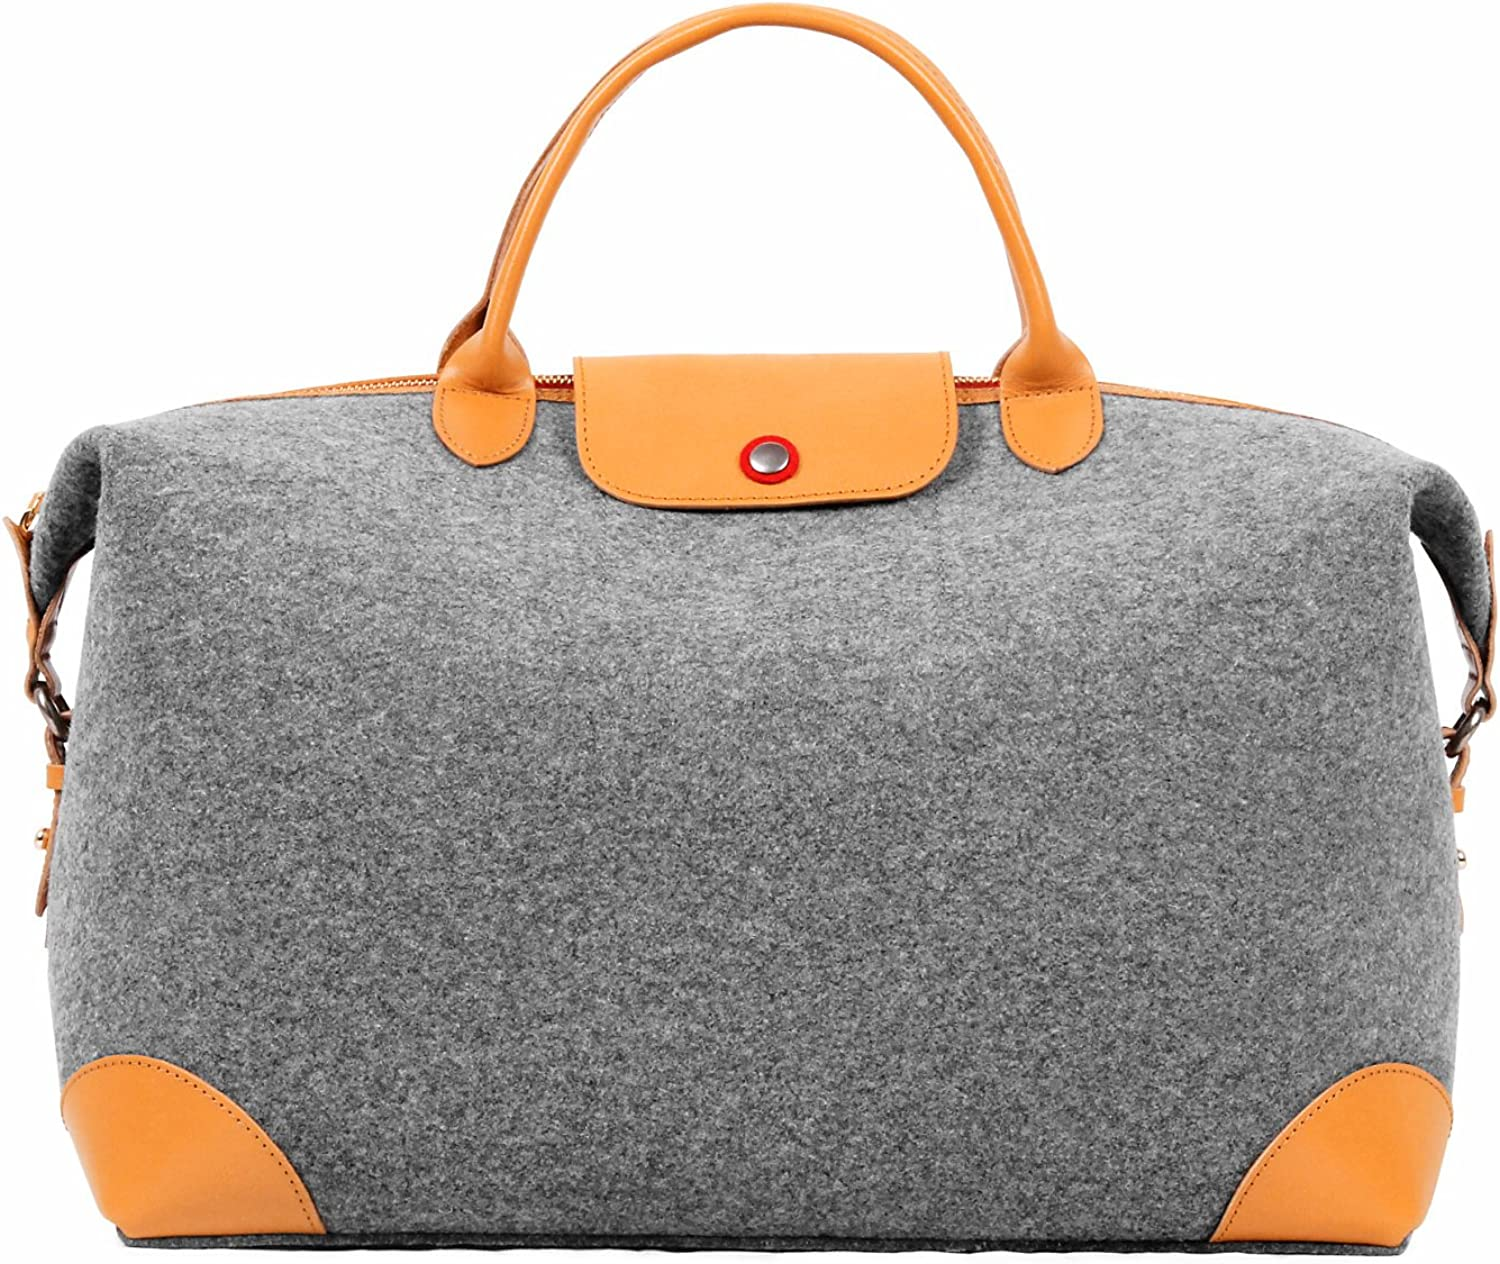 TOPHOME Wool Felt Work Tote Women's Large Handbag TopHandle for Ladies, Grey